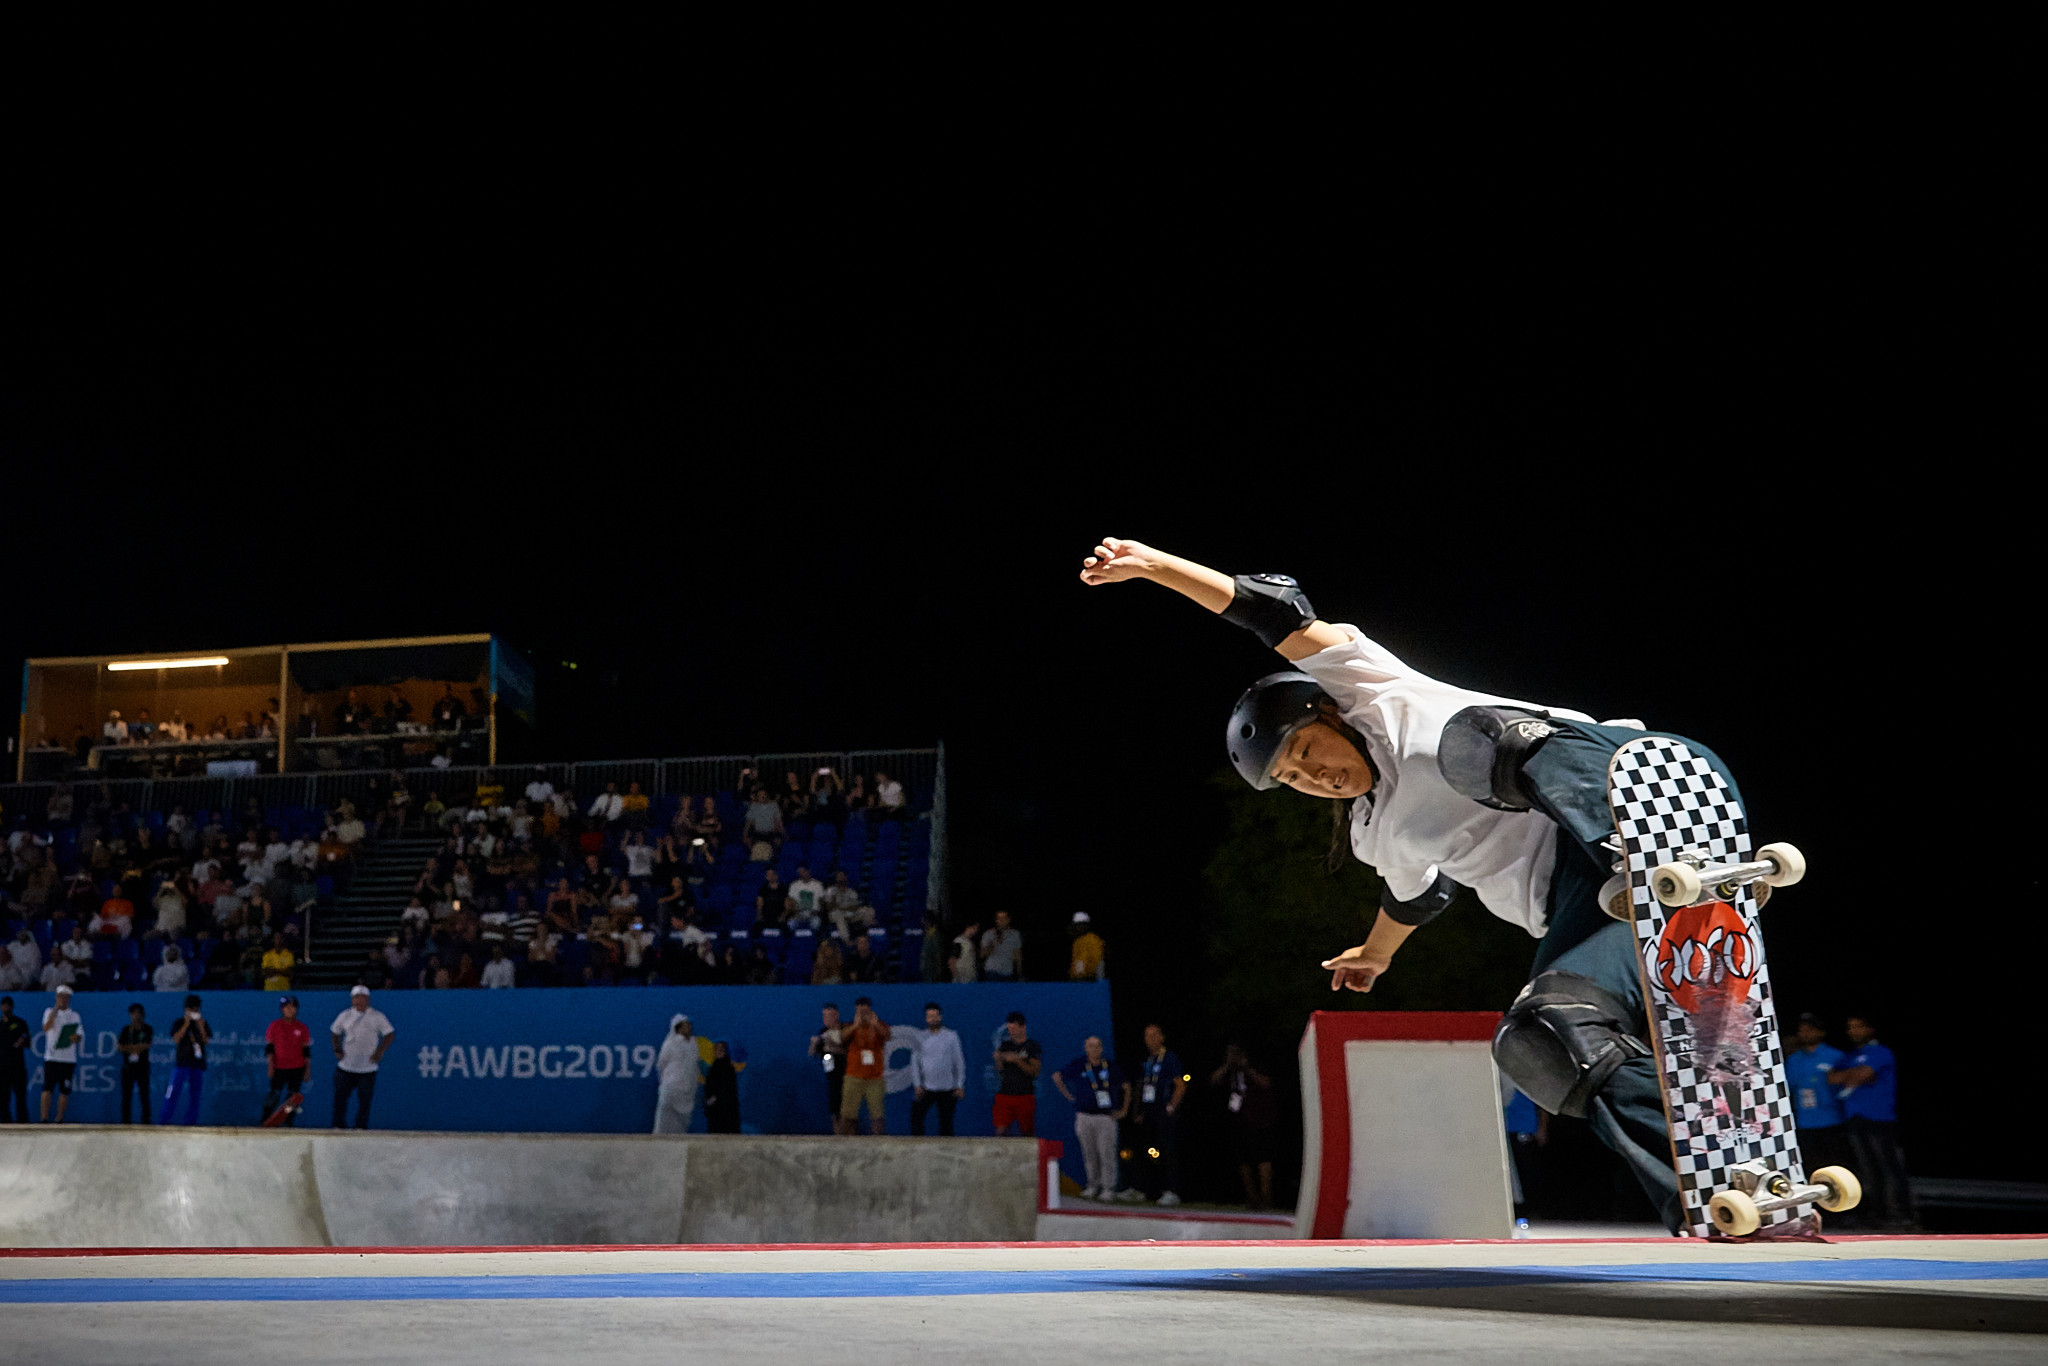 Japan, Brazil and the US top updated Olympic World Skateboarding rankings